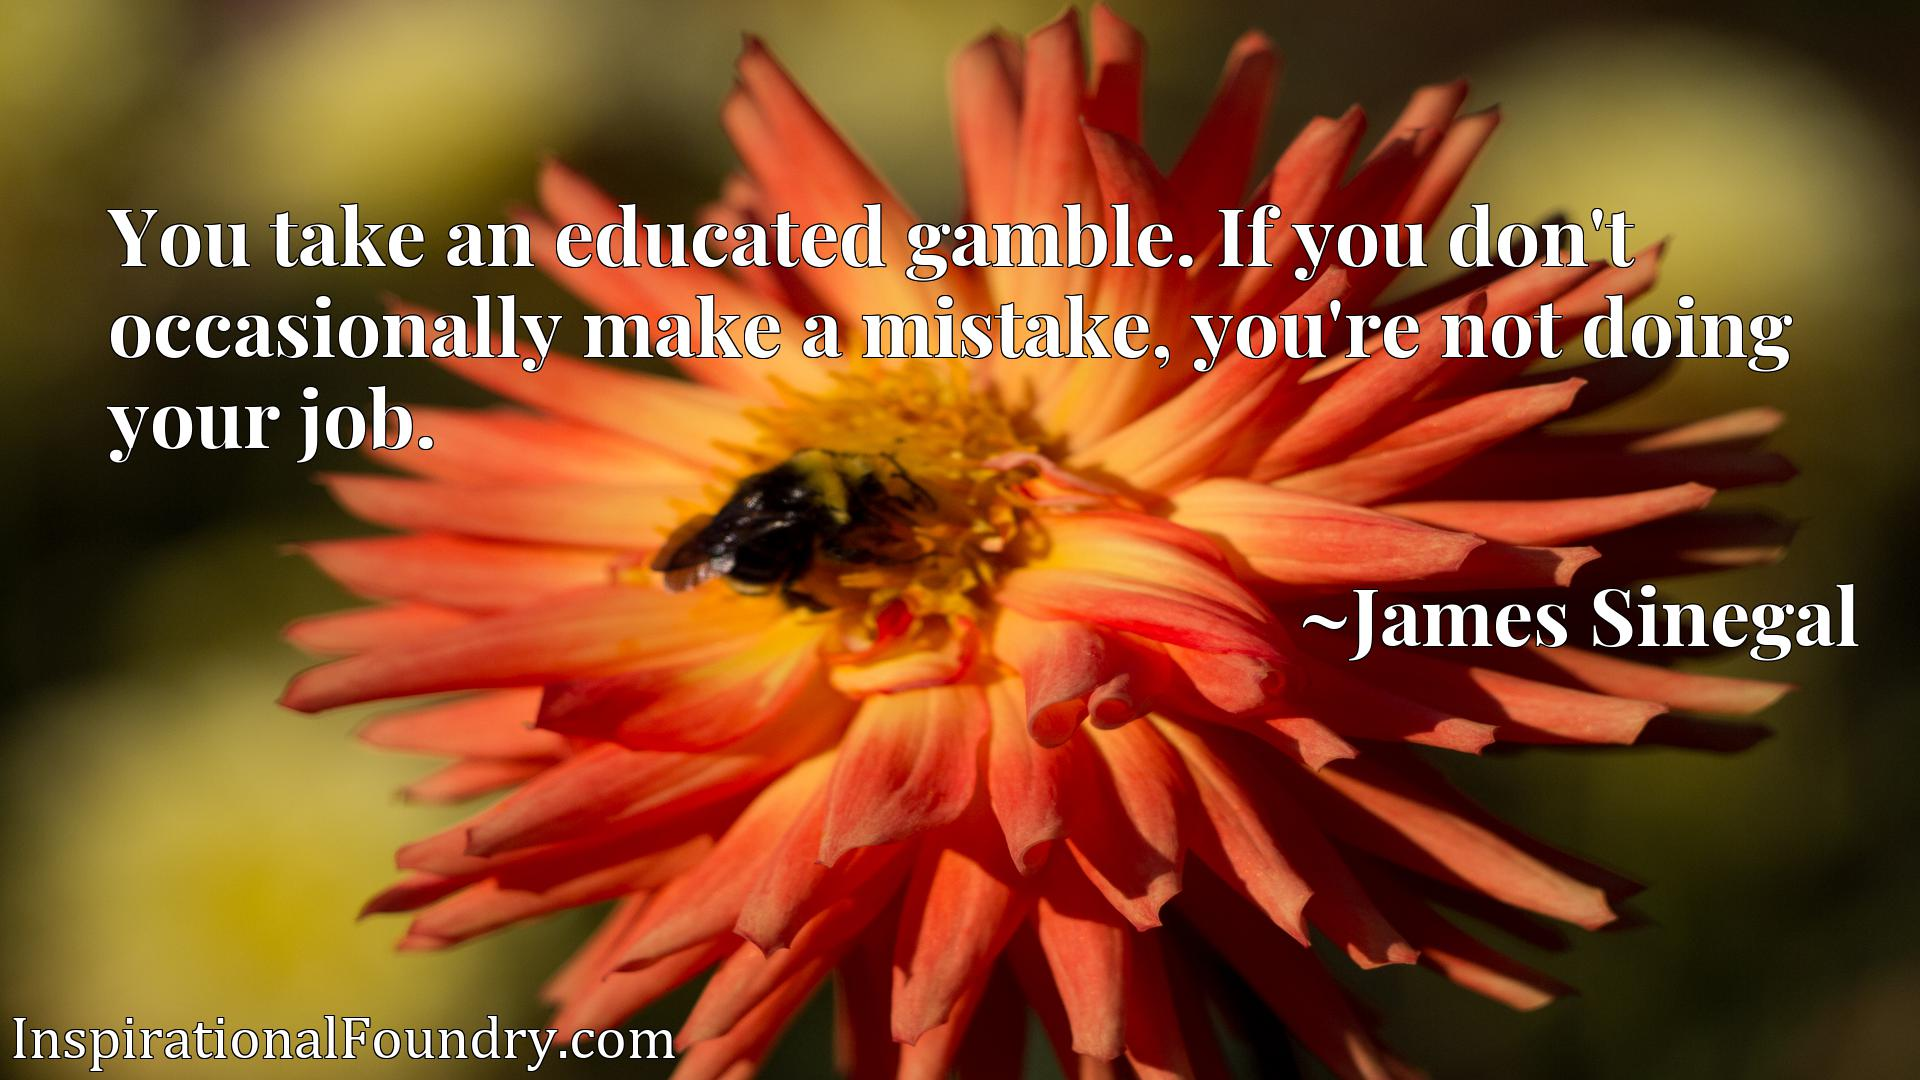 Quote Picture :You take an educated gamble. If you don't occasionally make a mistake, you're not doing your job.